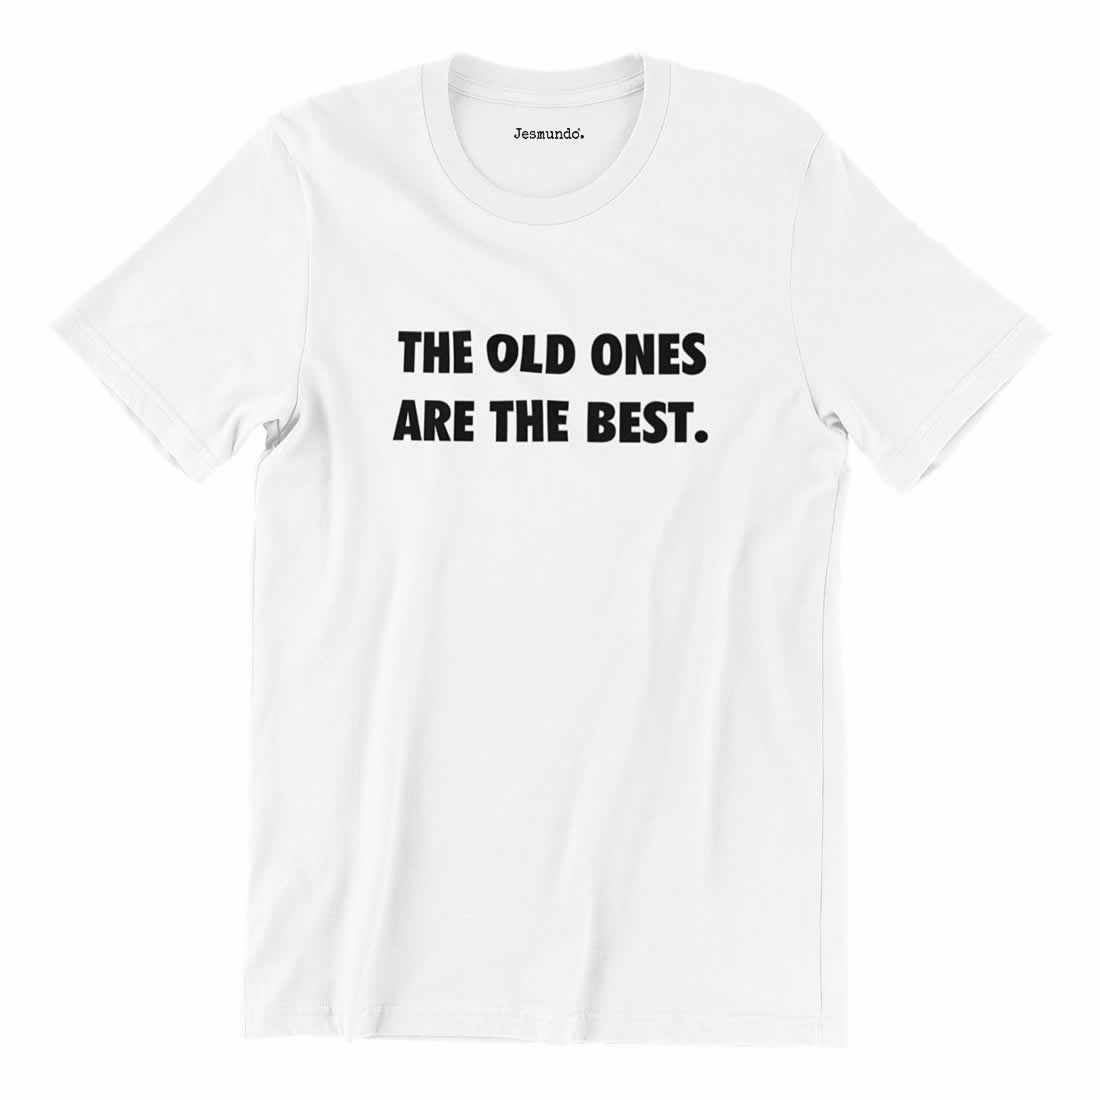 The Old Ones Are The Best T-Shirt